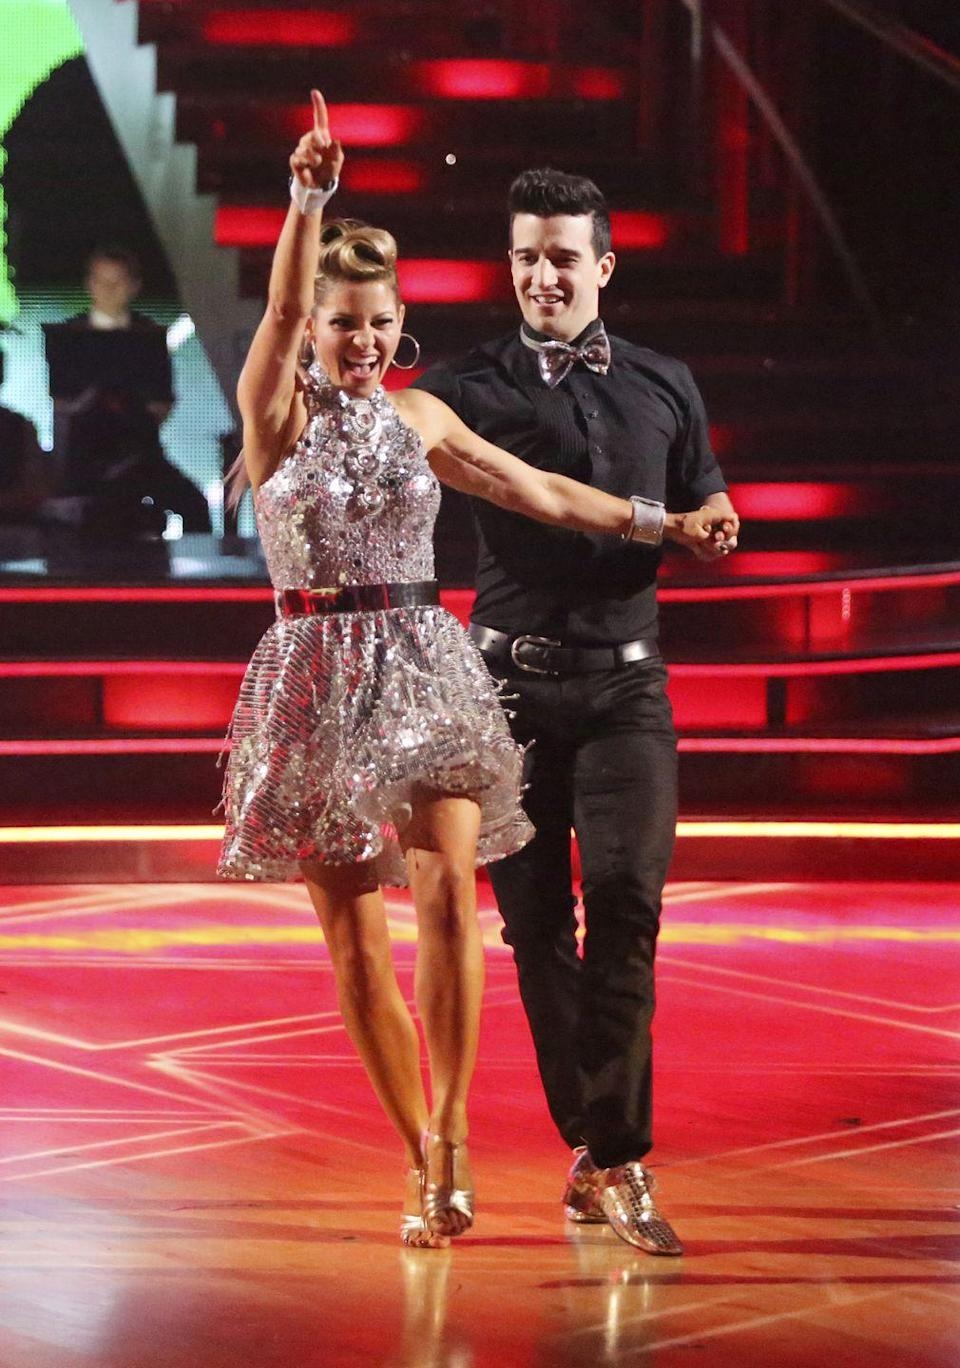 "<p>The <em>Full House</em> and <em>Fuller House</em> star had an ankle injury that almost derailed her journey to the finale on season 18. Cameron shared a photo of her ankle wrapped in ice on Instagram. She got X-rays and was able to continue dancing. Her pro partner, Mark Ballas also hurt his shoulder close to the end of competition, per <em><a href=""https://people.com/tv/mark-ballas-seriously-injured-in-dancing-with-the-stars-finale-rehearsal/"" rel=""nofollow noopener"" target=""_blank"" data-ylk=""slk:People"" class=""link rapid-noclick-resp"">People</a></em>. ""Mark was seriously injured during camera blocking. His shoulder popped out during a lift and he was taken by ambulance to the hospital where he was treated and released. It's unclear whether or not he'll be able to perform on Monday's show.""</p>"